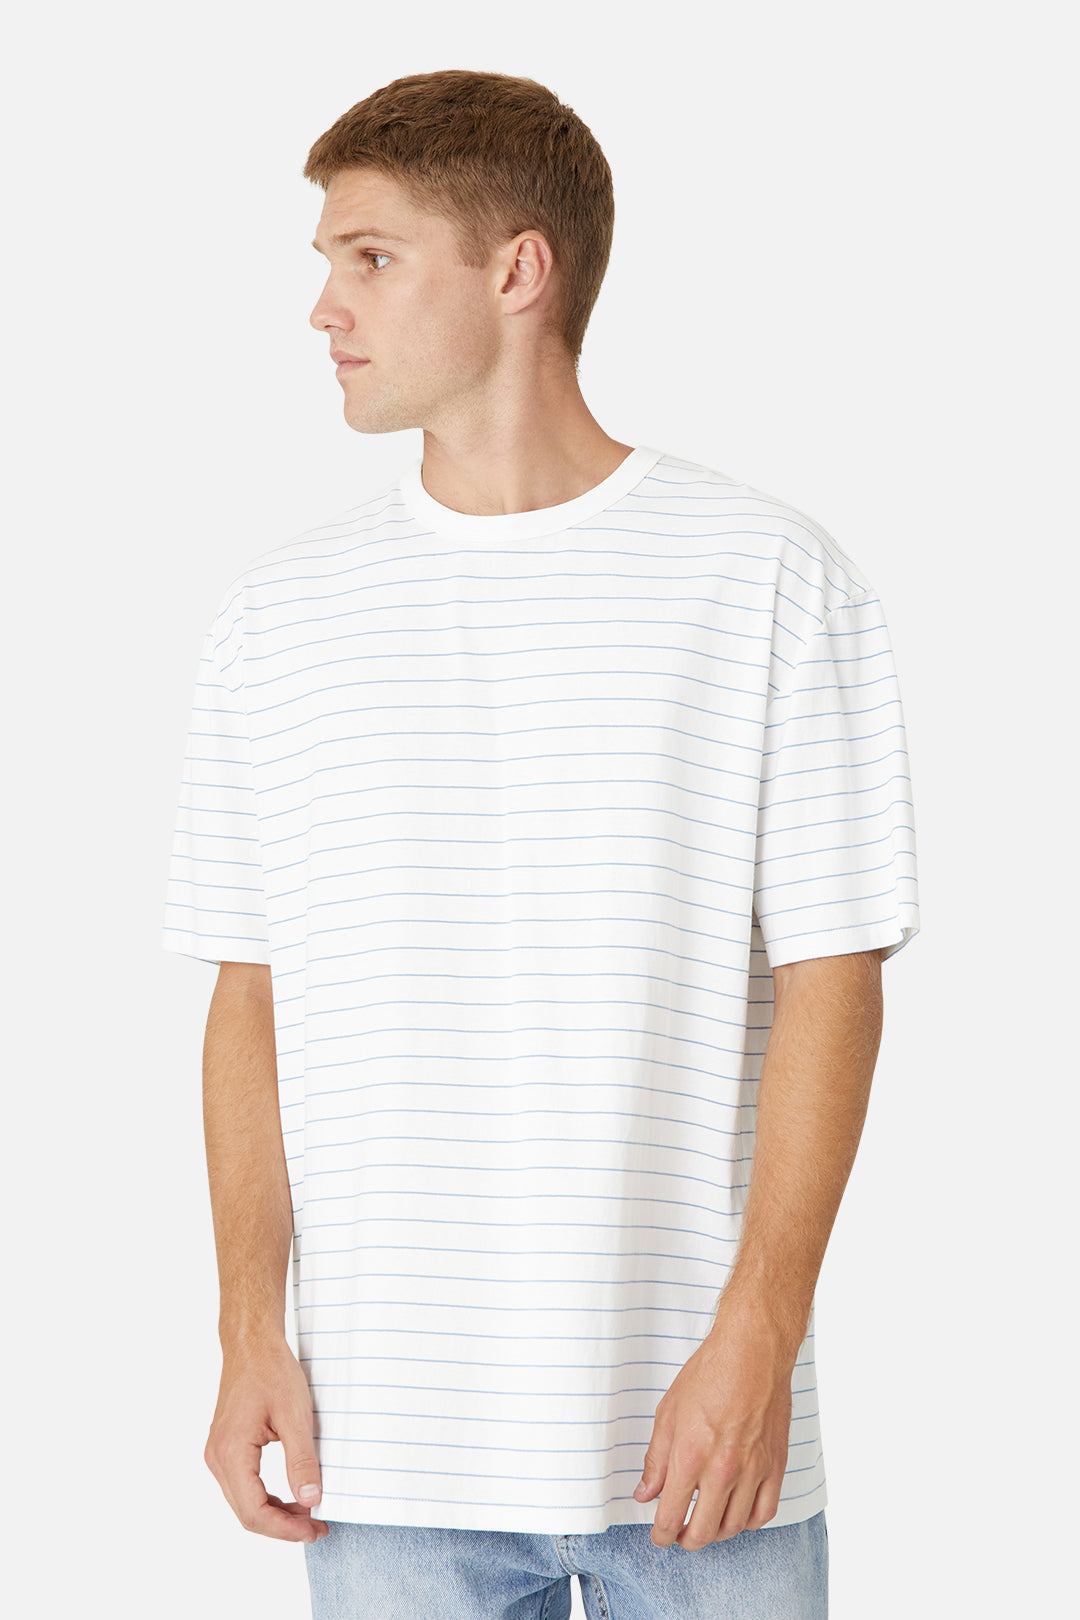 The Fine Stripe Del Sur Tee - Off White Light Blue